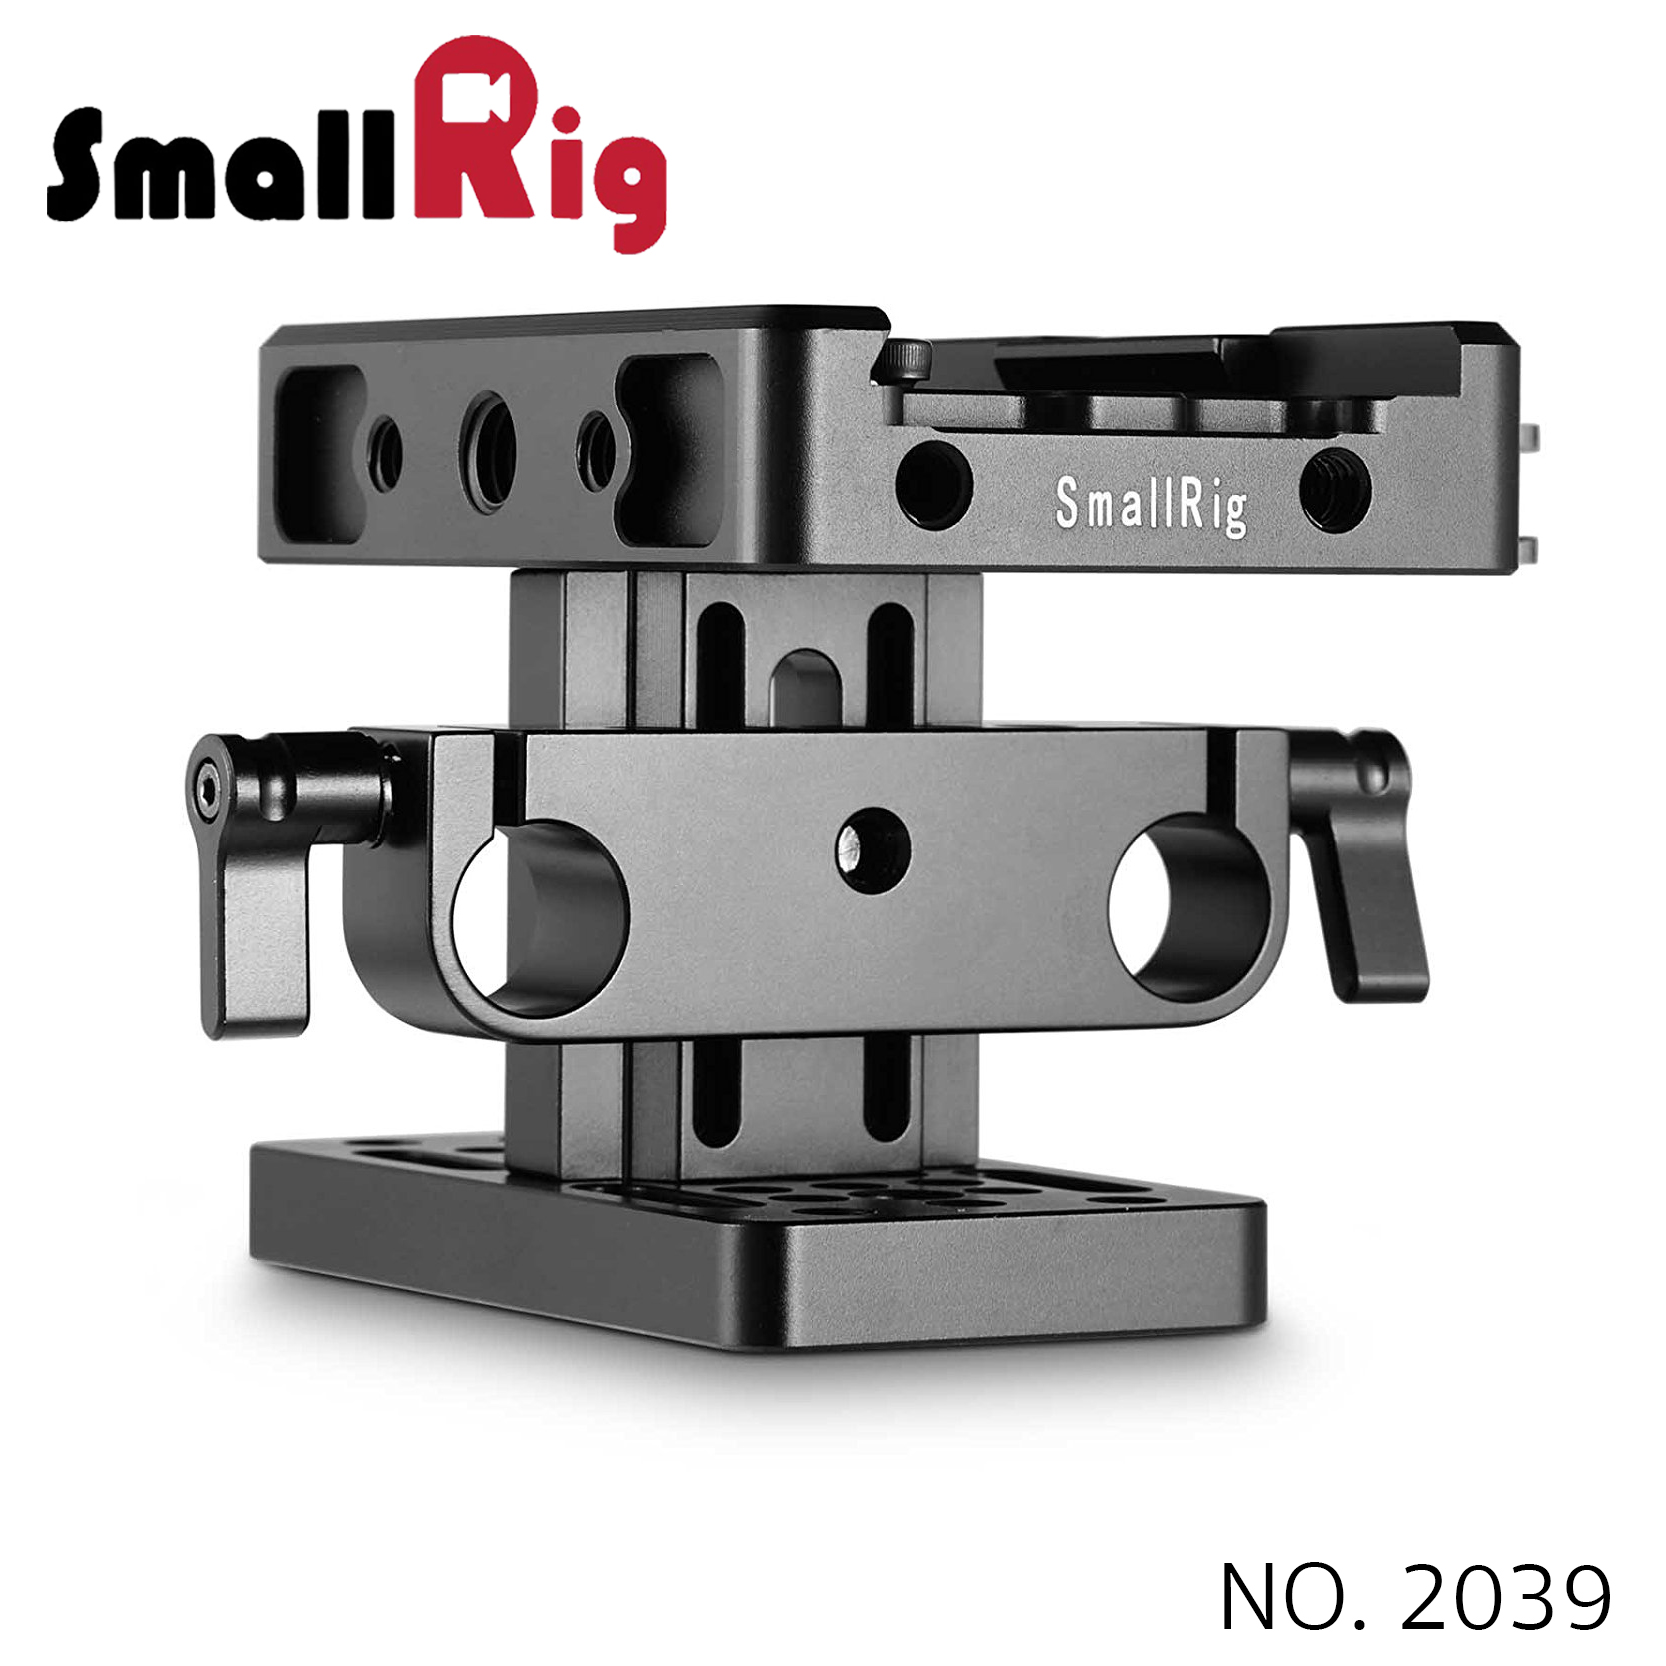 SMALLRIG® Baseplate (Manfrotto) with 15mm Rail Support System 2039